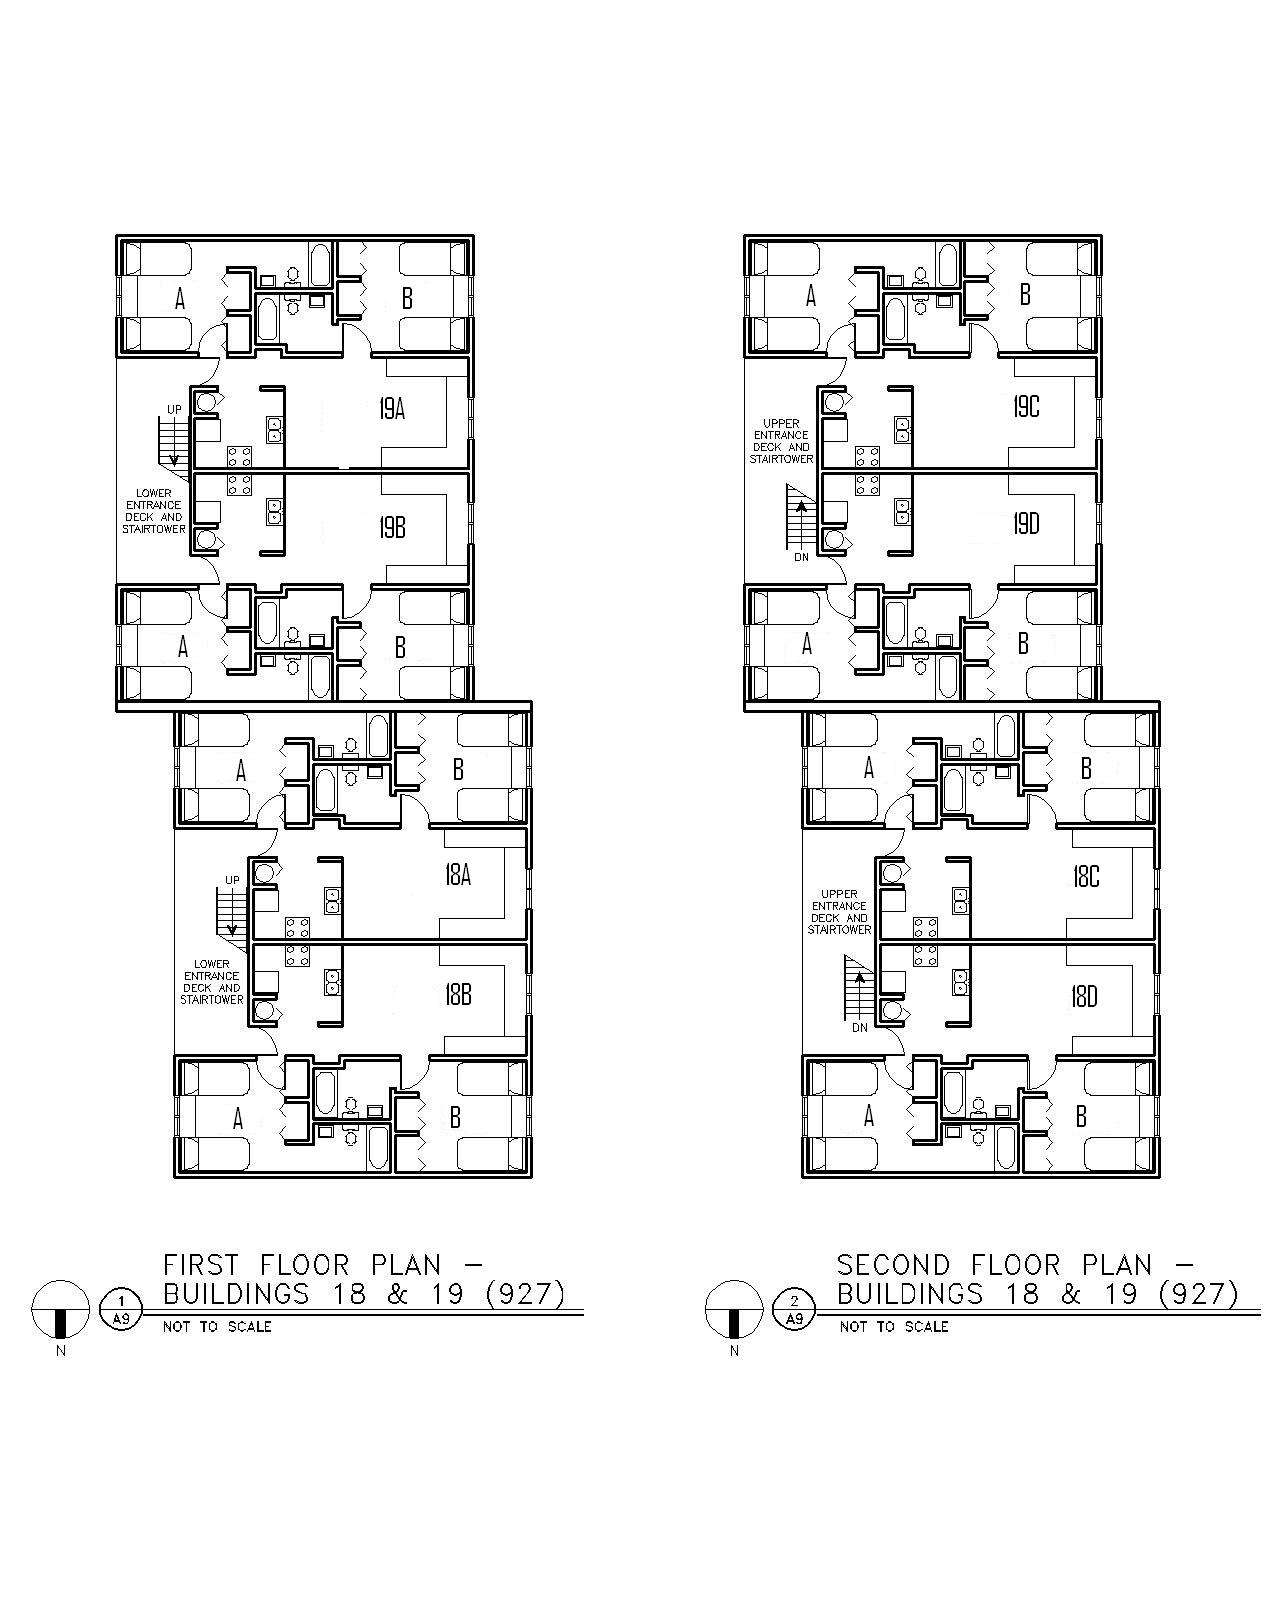 Floor Plan for Buildings 18 & 19